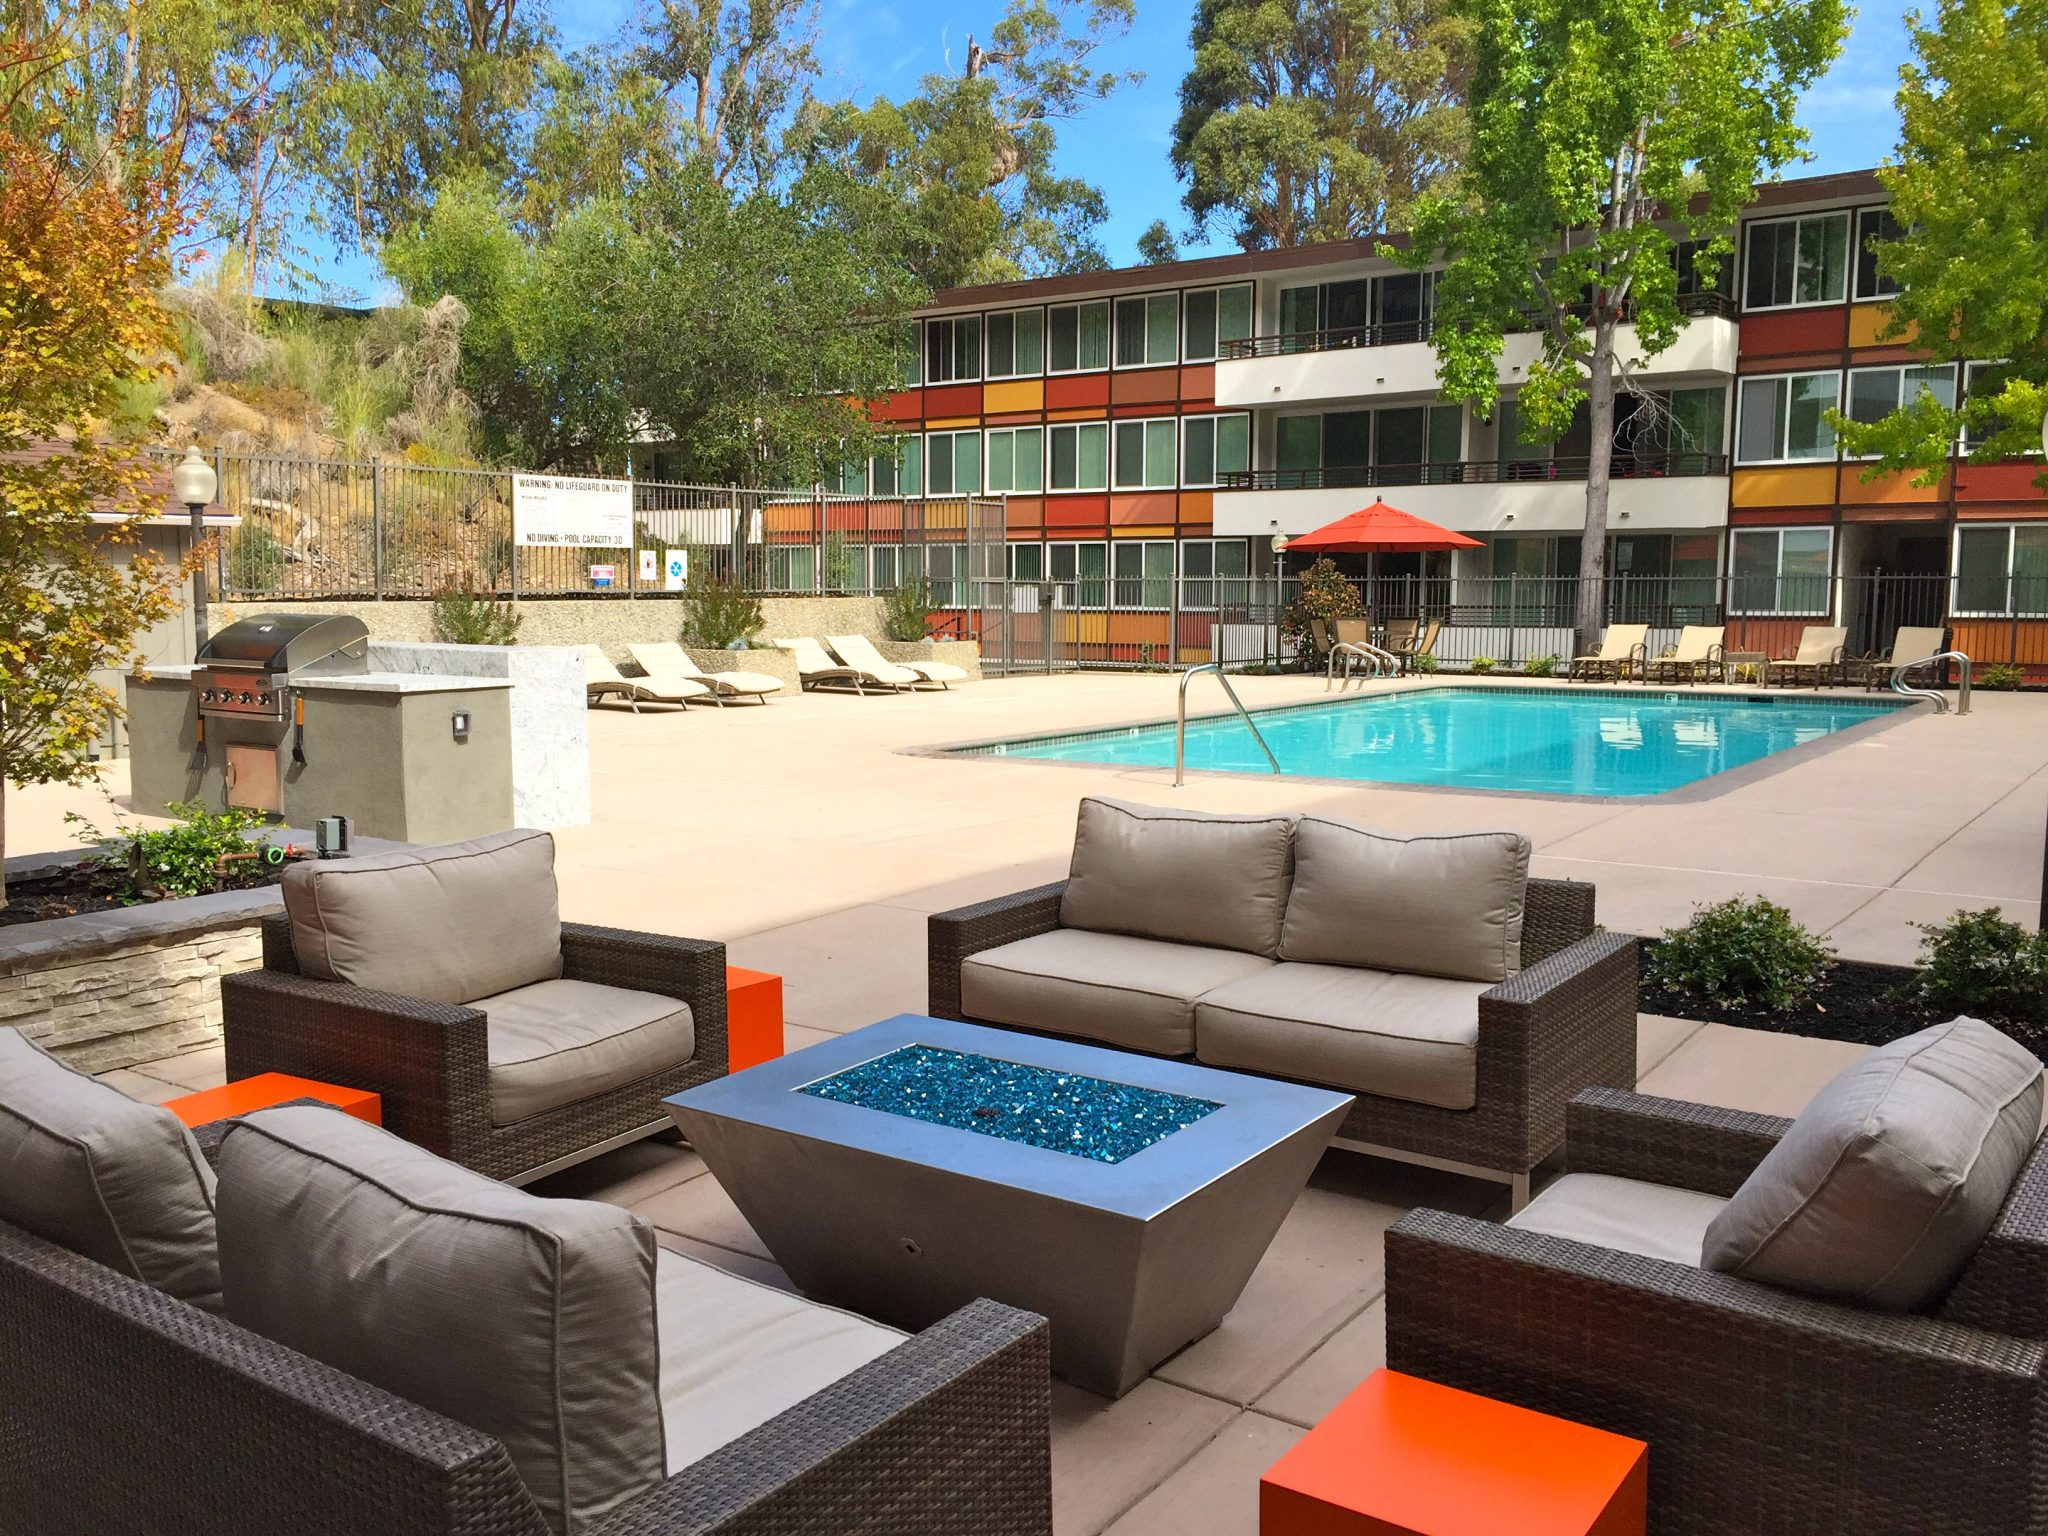 Exterior of pool deck with modern outdoor couches with fire pit in the foreground.